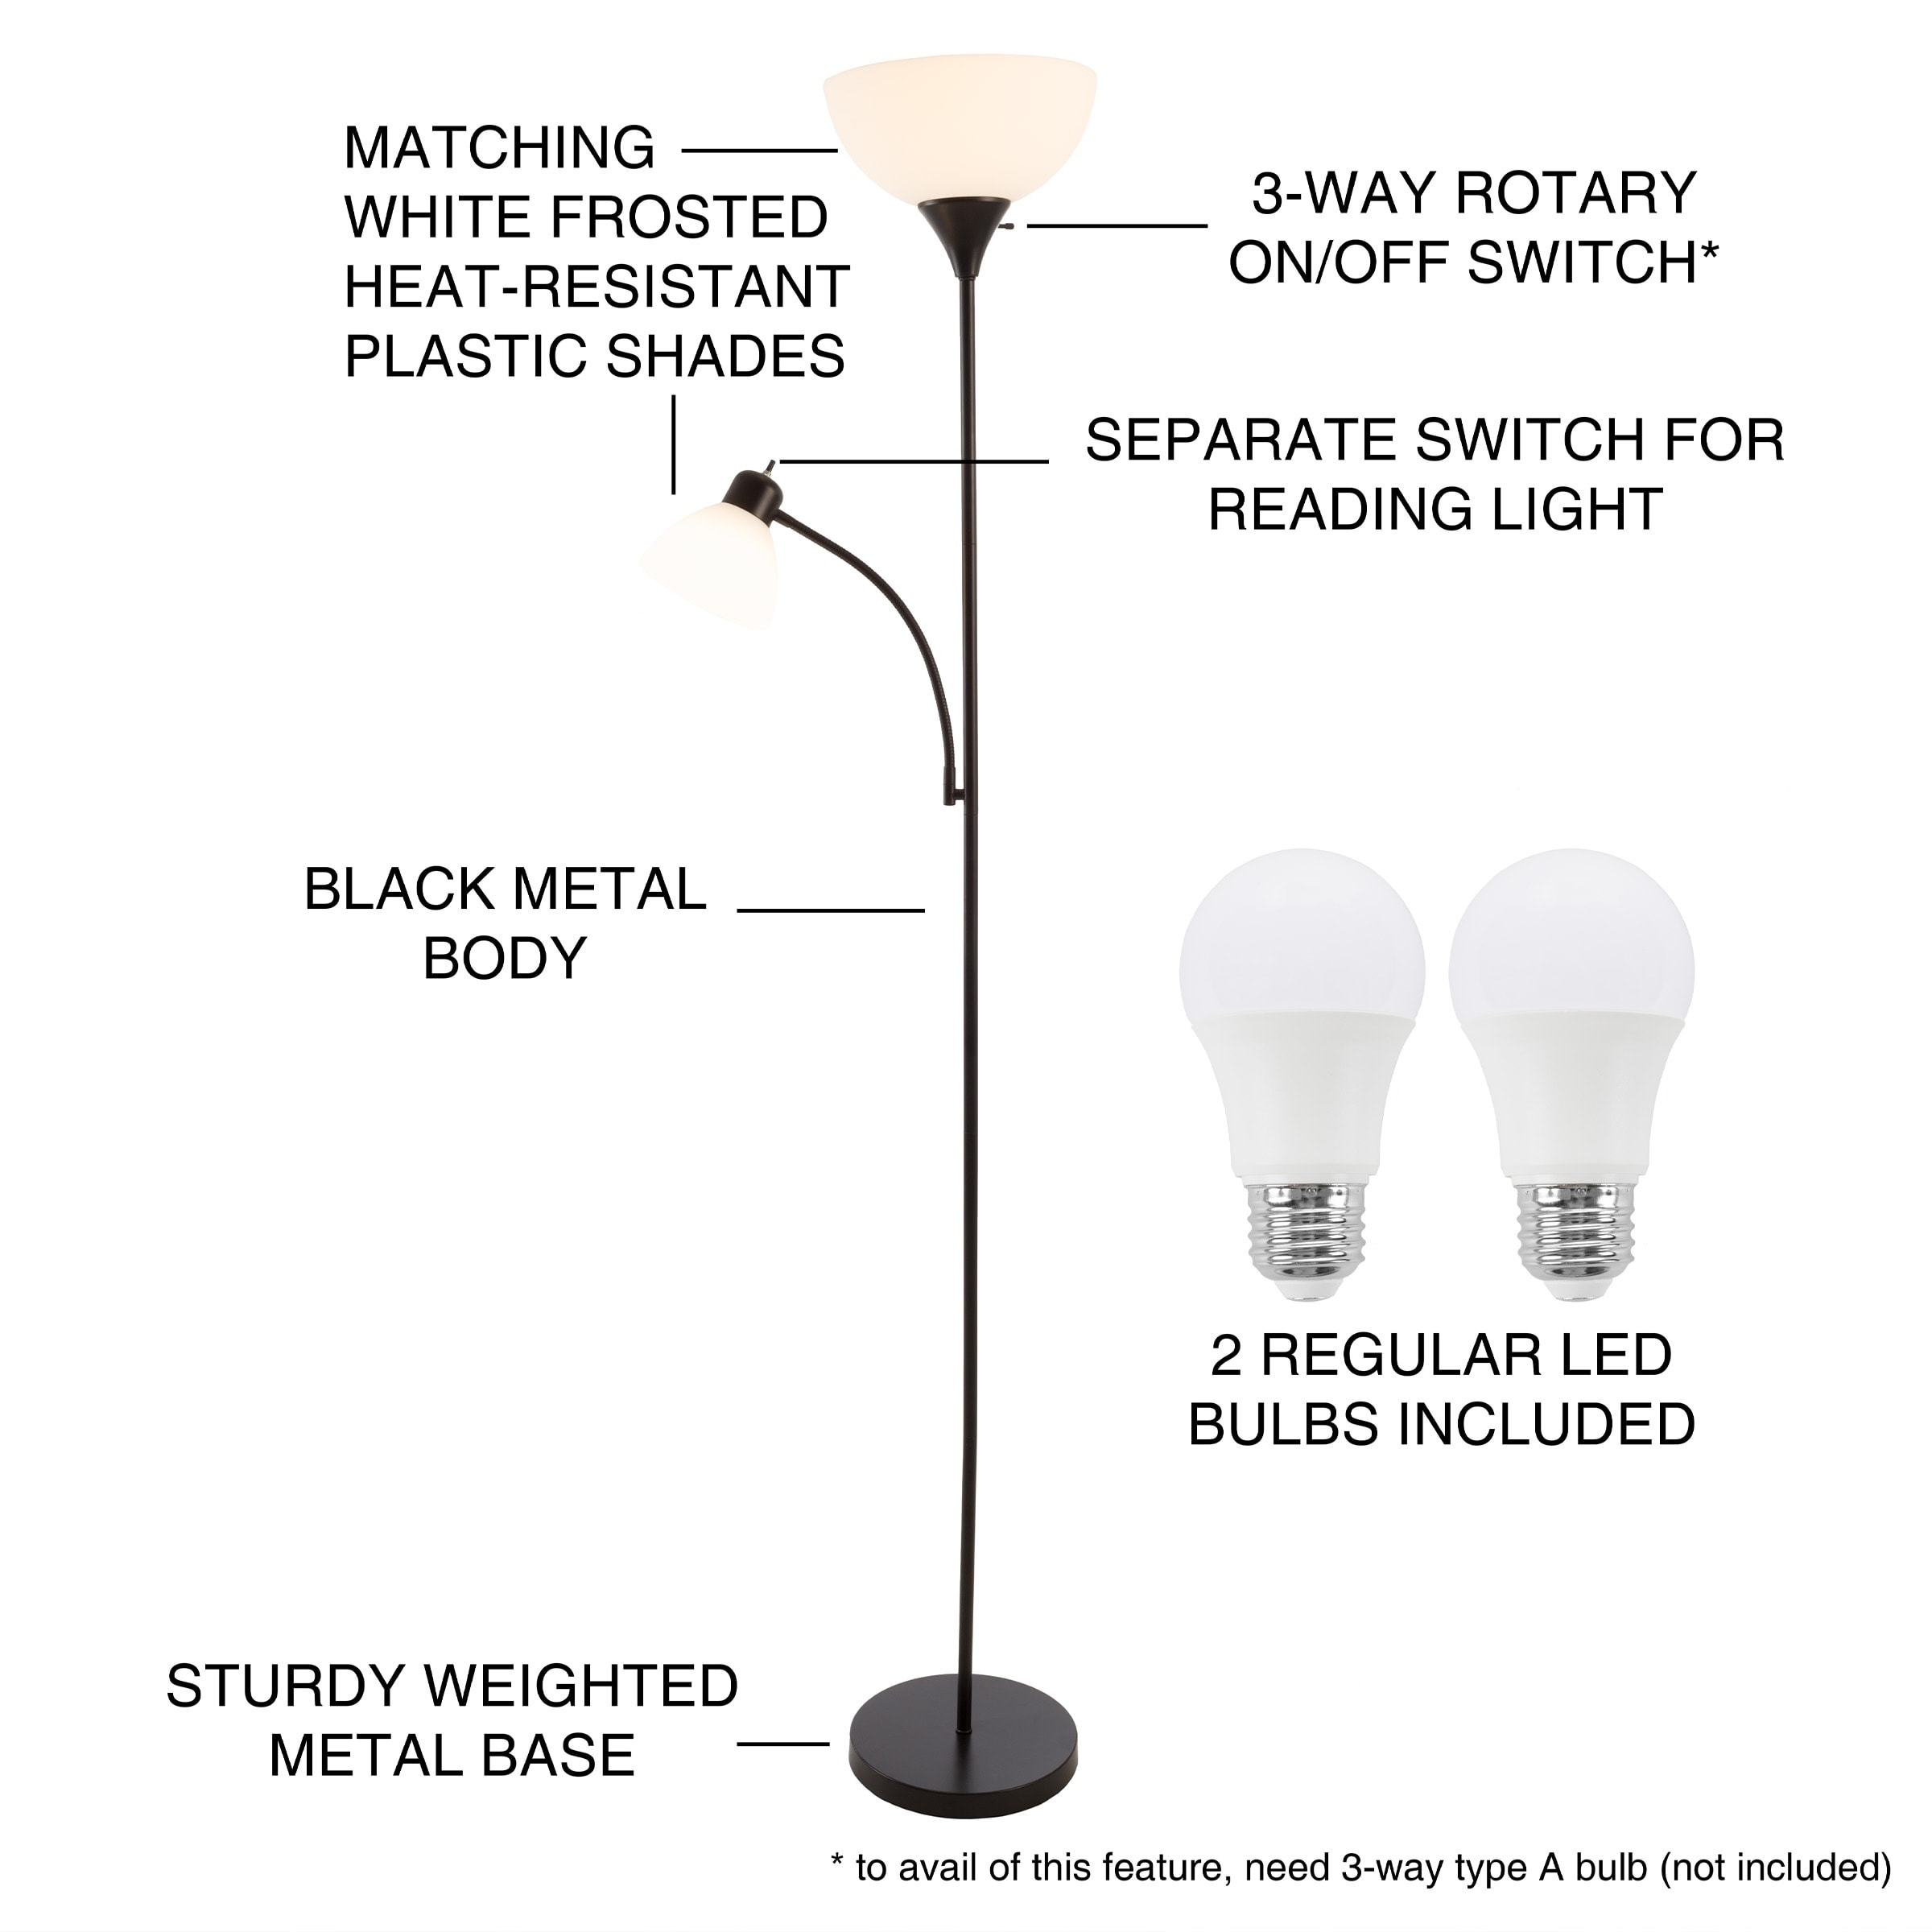 Shop Torchiere Floor Lamp Reading Light Wh Free Shipping Today 3 Way Switch 21010440